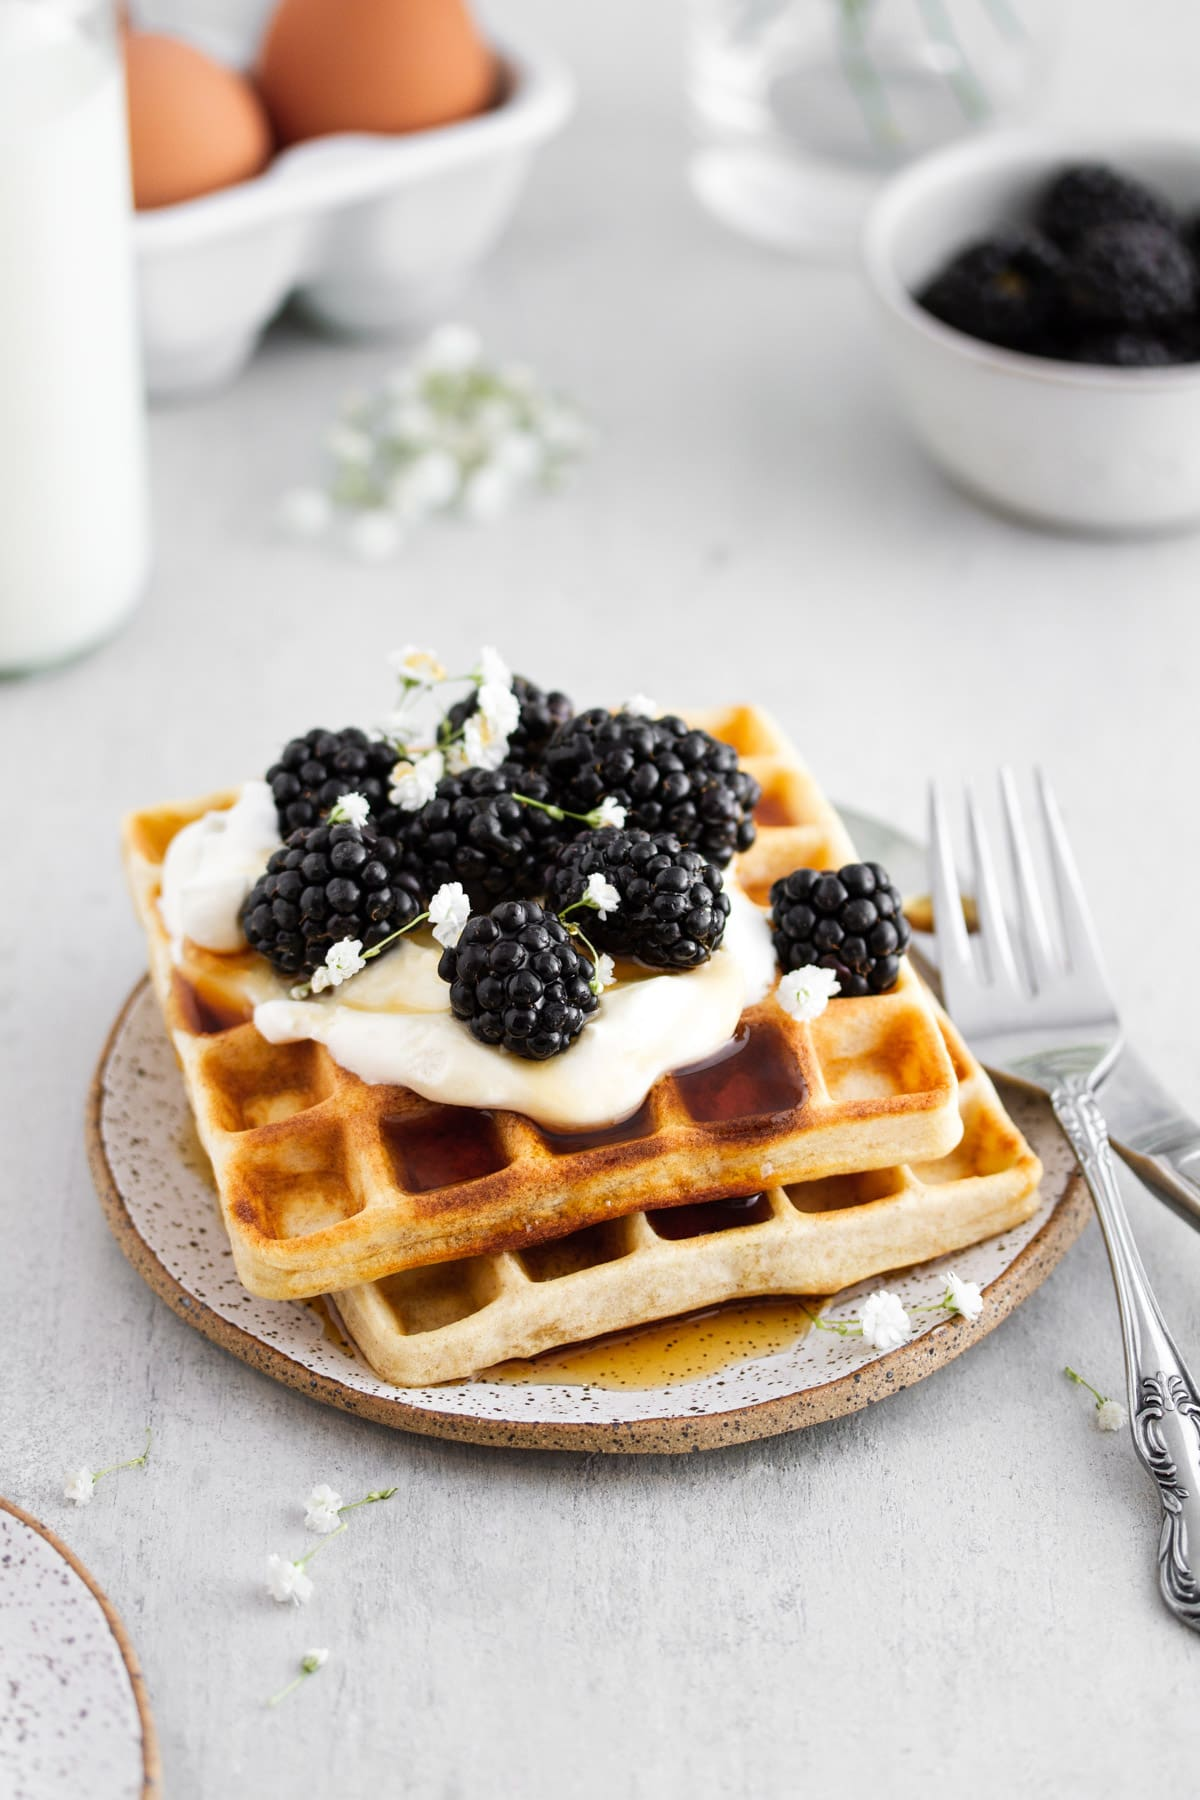 sourdough waffles with whipped cream and berries on a plate